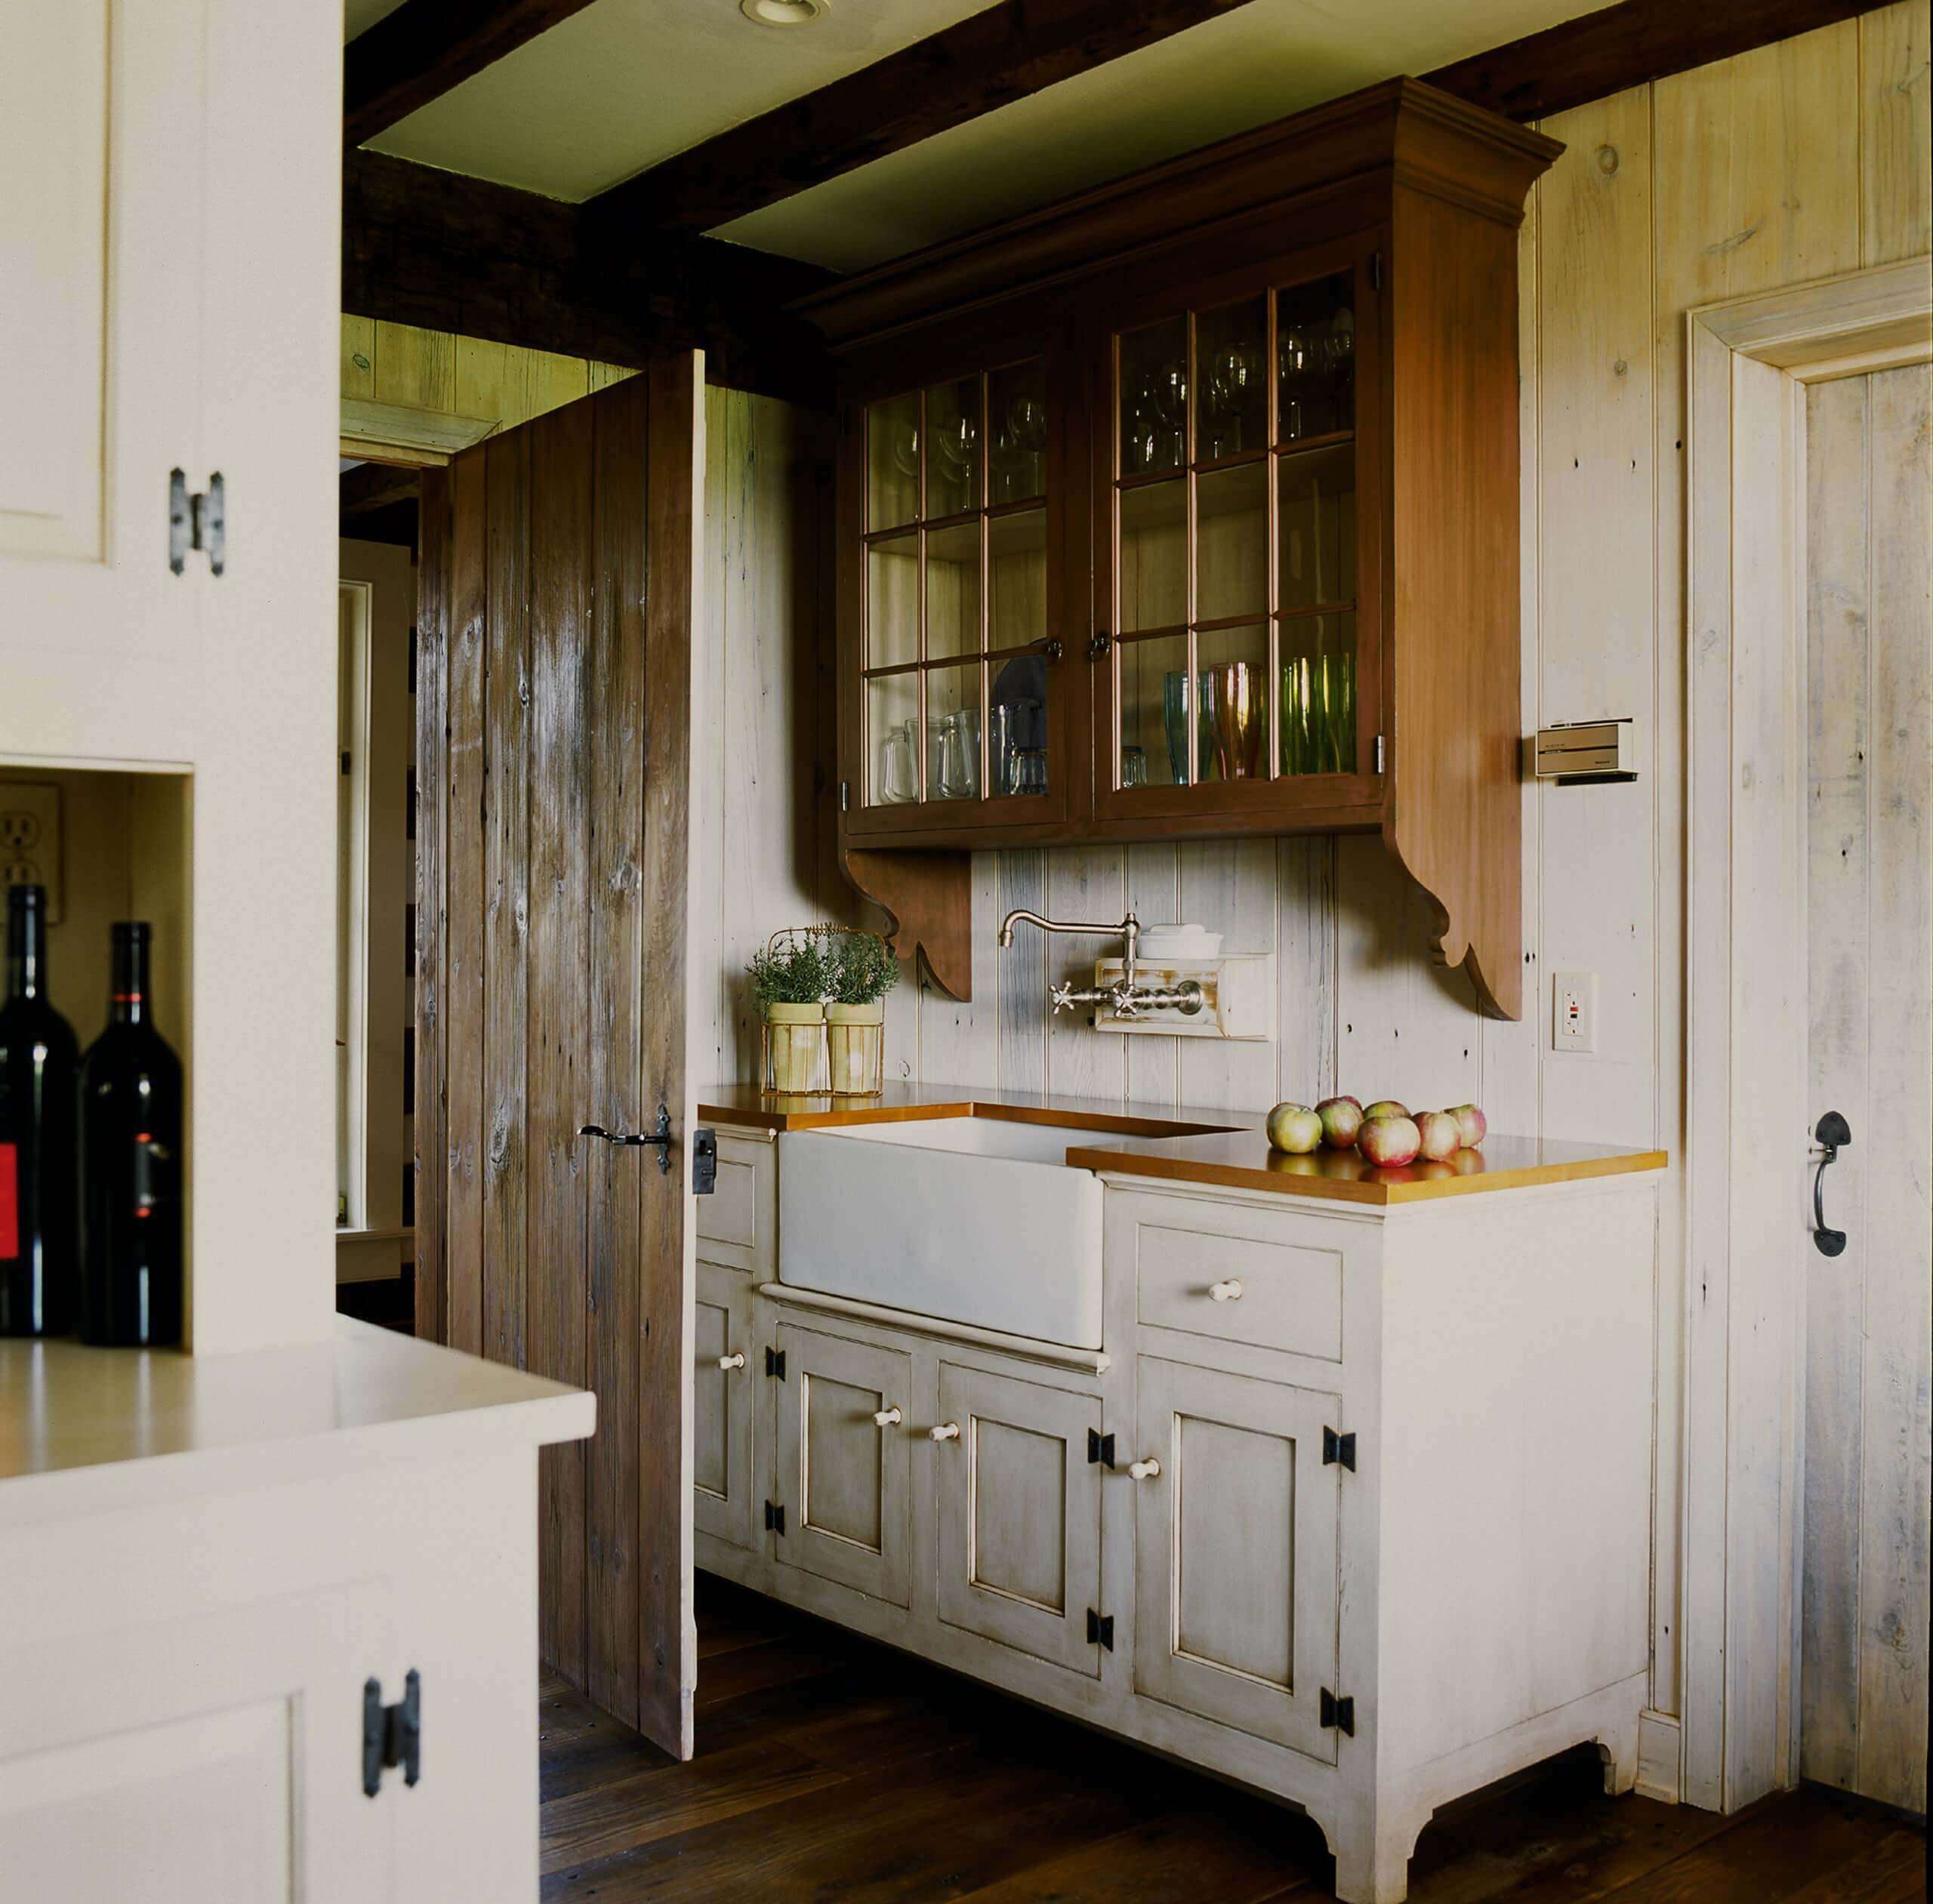 Rustic Cabinets Kitchen: 23 Best Ideas Of Rustic Kitchen Cabinet You'll Want To Copy